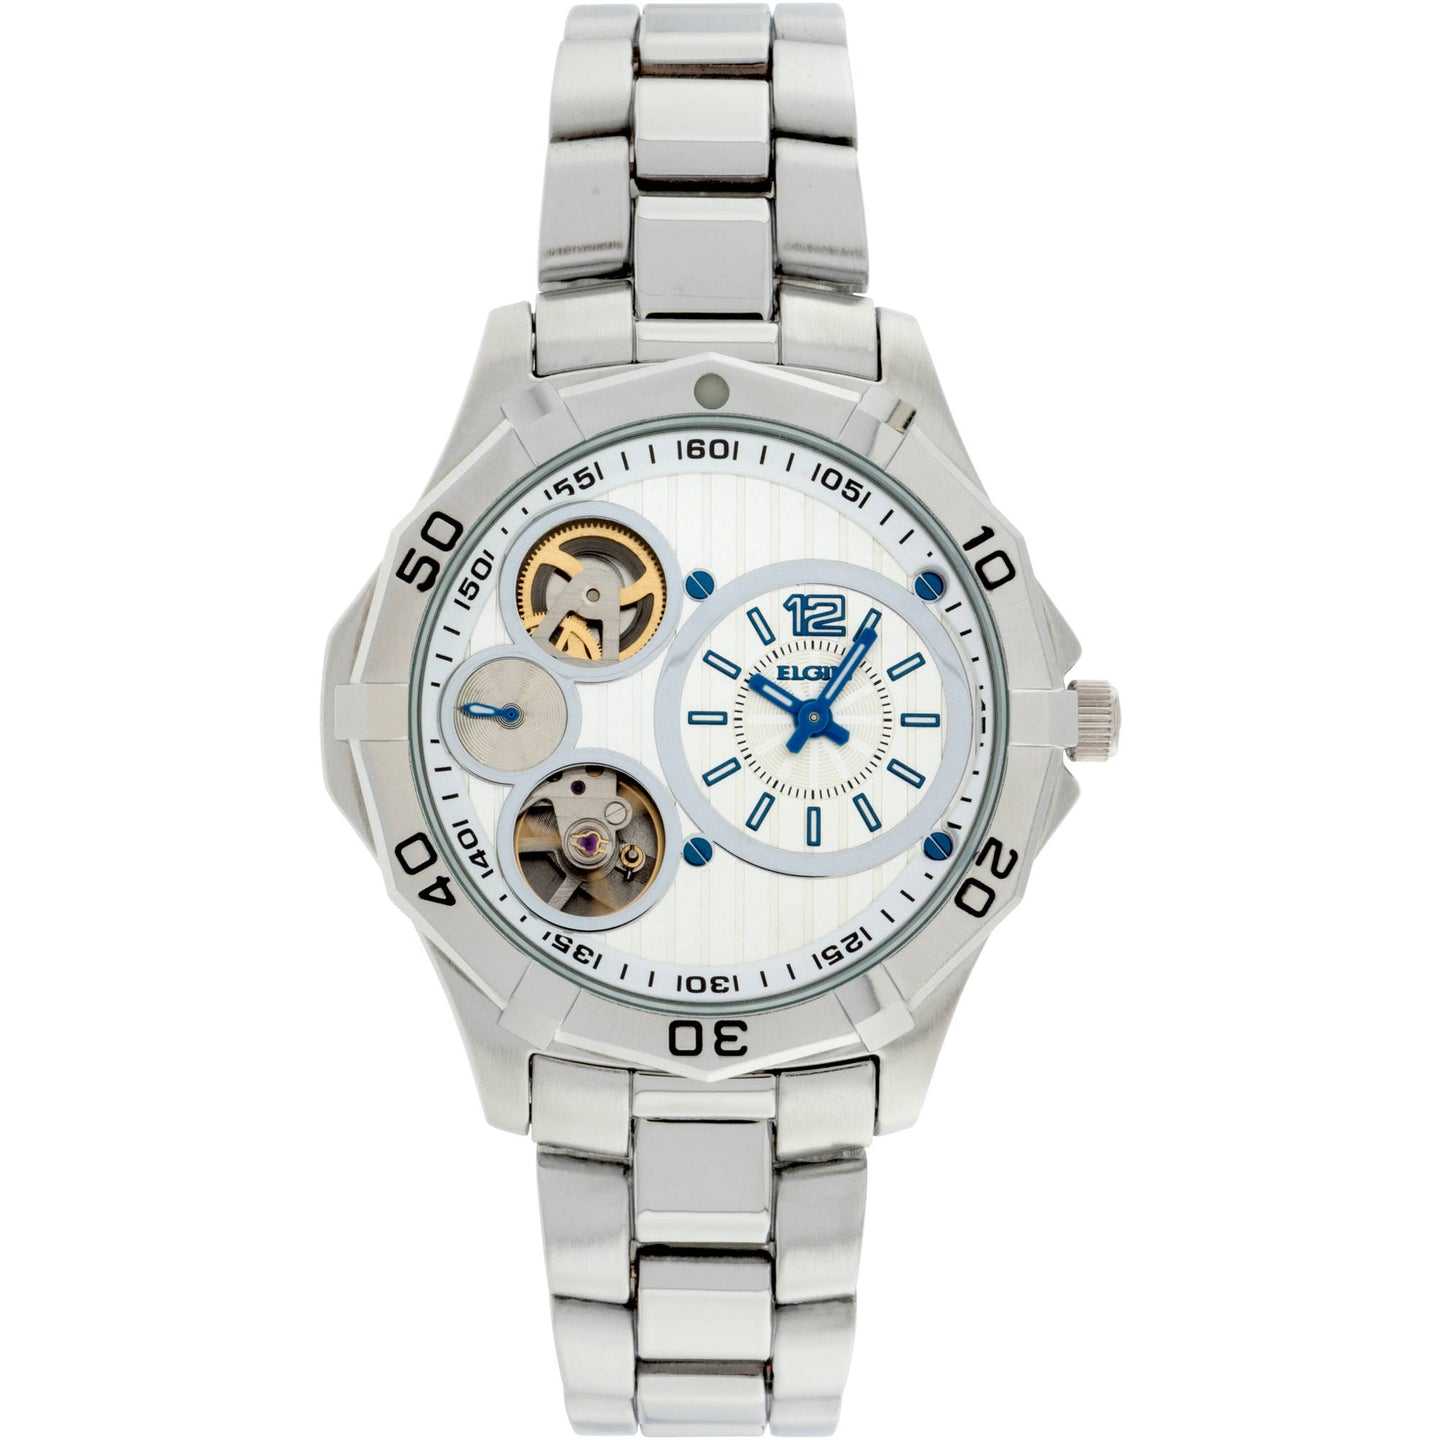 Elgin Men's Silver-Tone Round Case White and Silver Dial Semi Automatic Bracelet Watch - FG9731L61